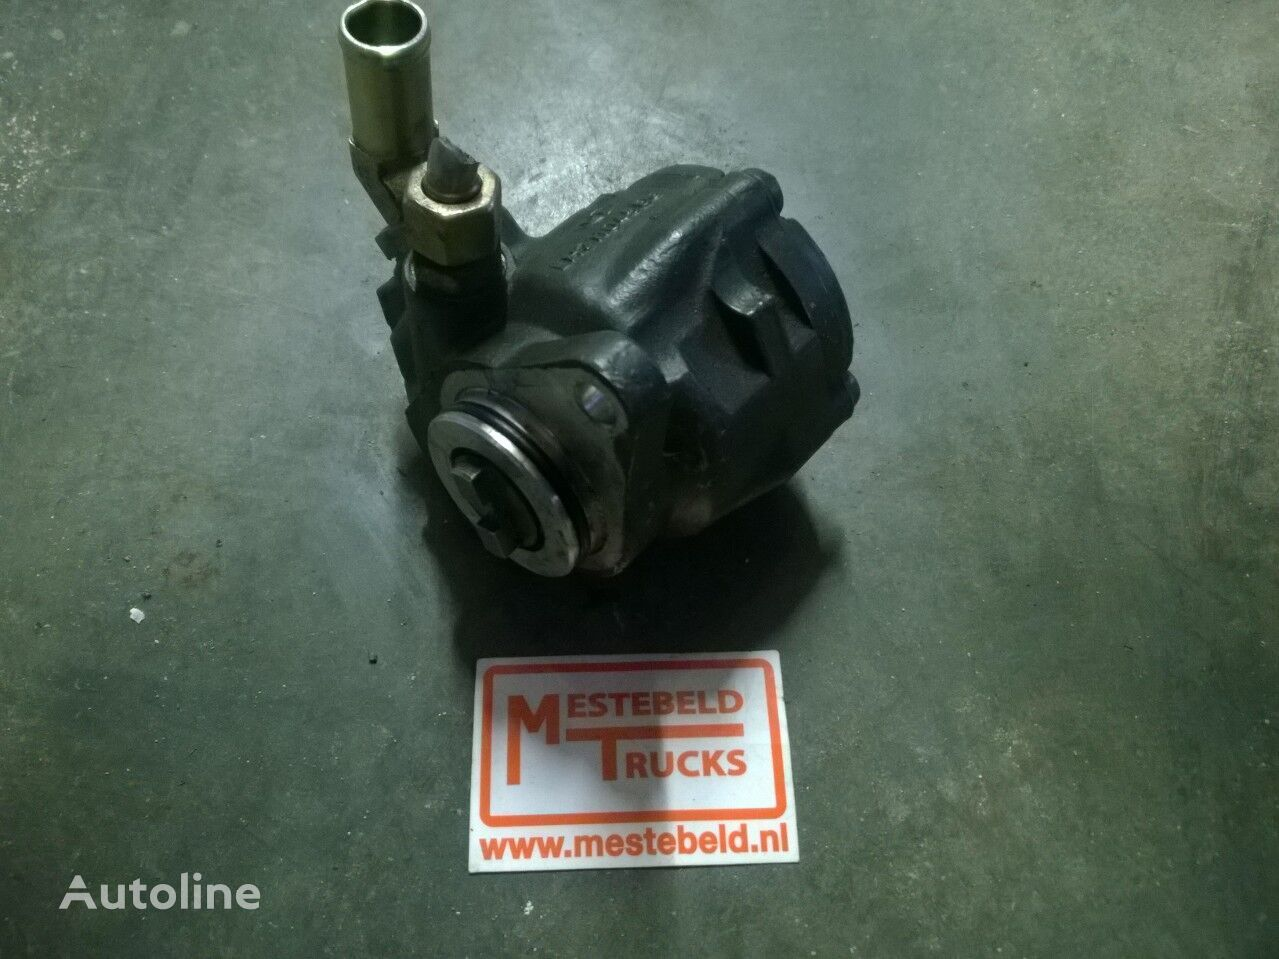 MERCEDES-BENZ power steering pump for MERCEDES-BENZ Stuurpomp Axor truck